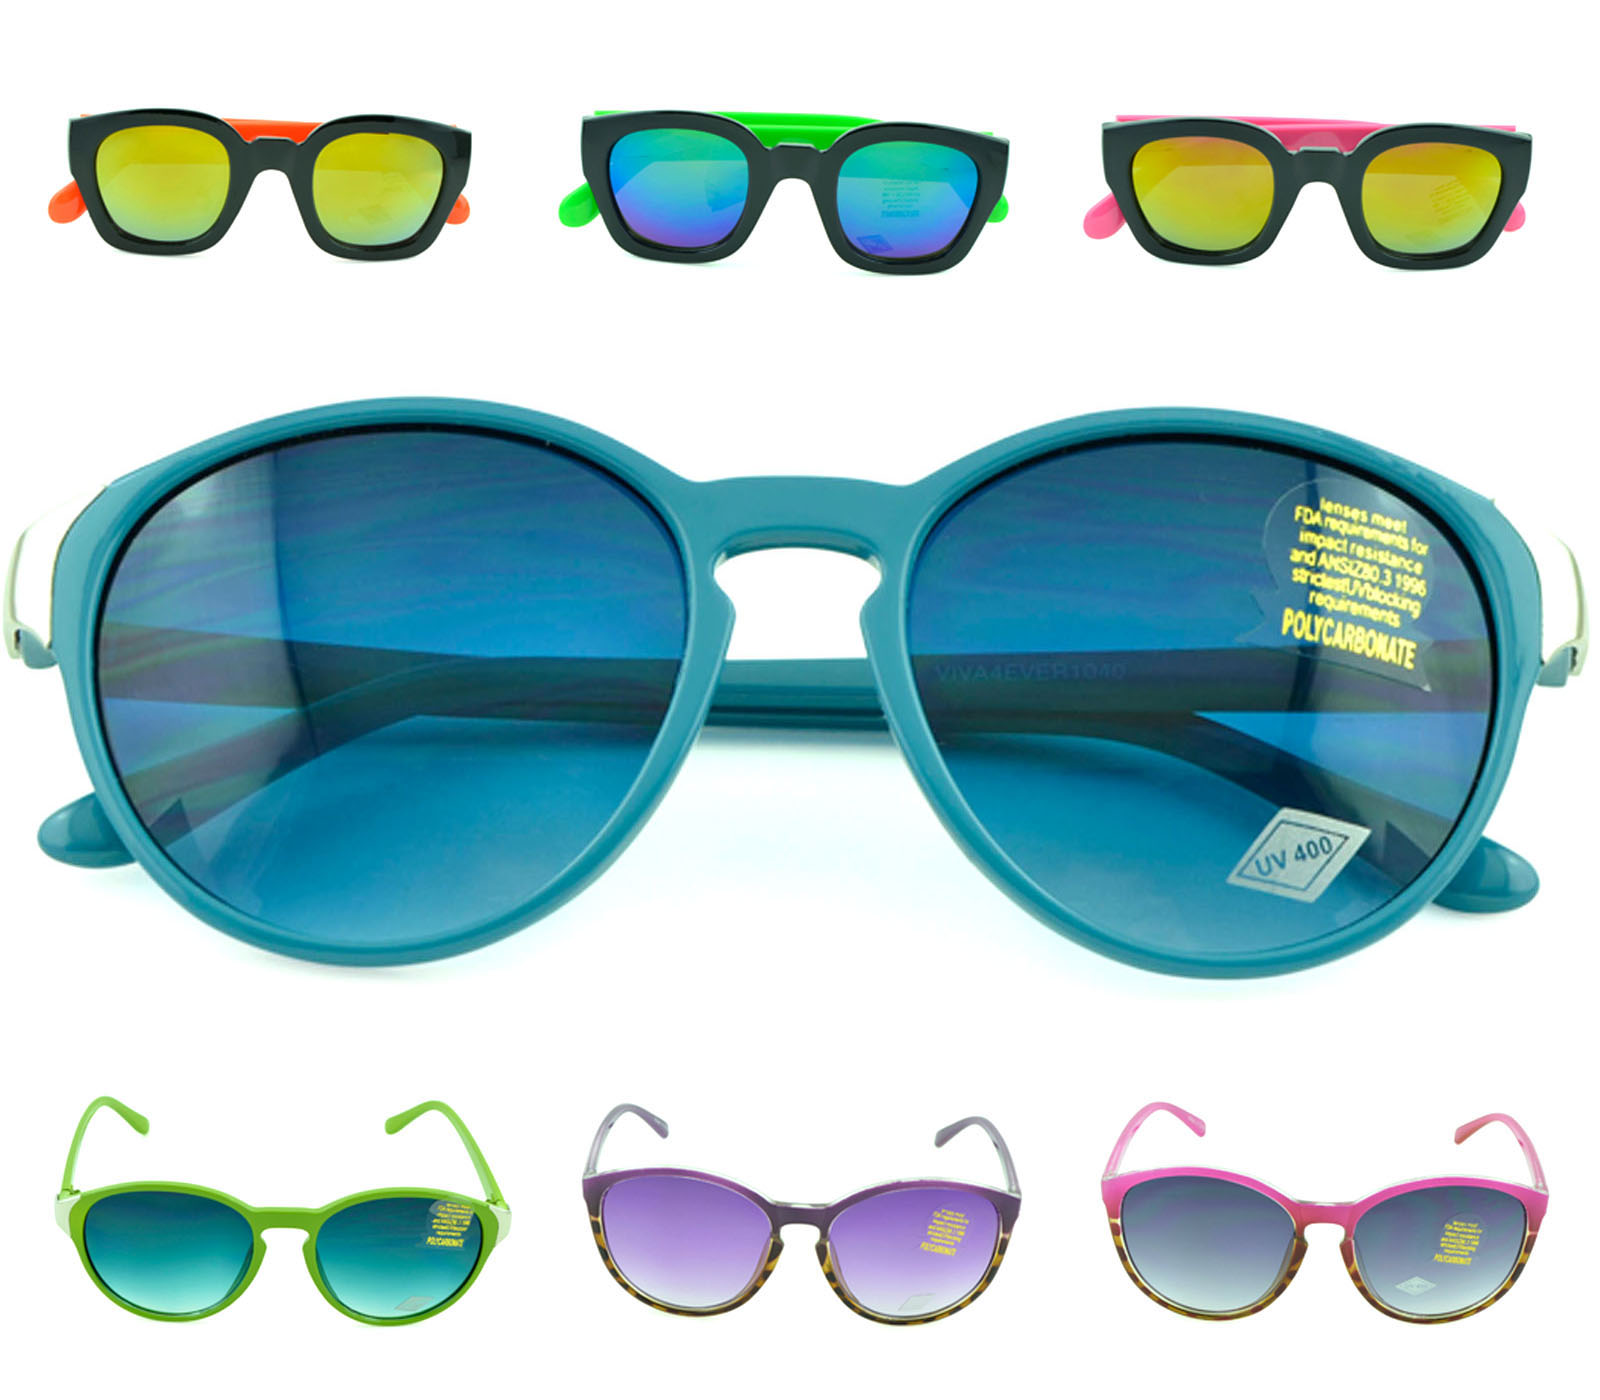 Belle Donne-Modern and Bold Womens Fashion Sunglasses with UV Protection